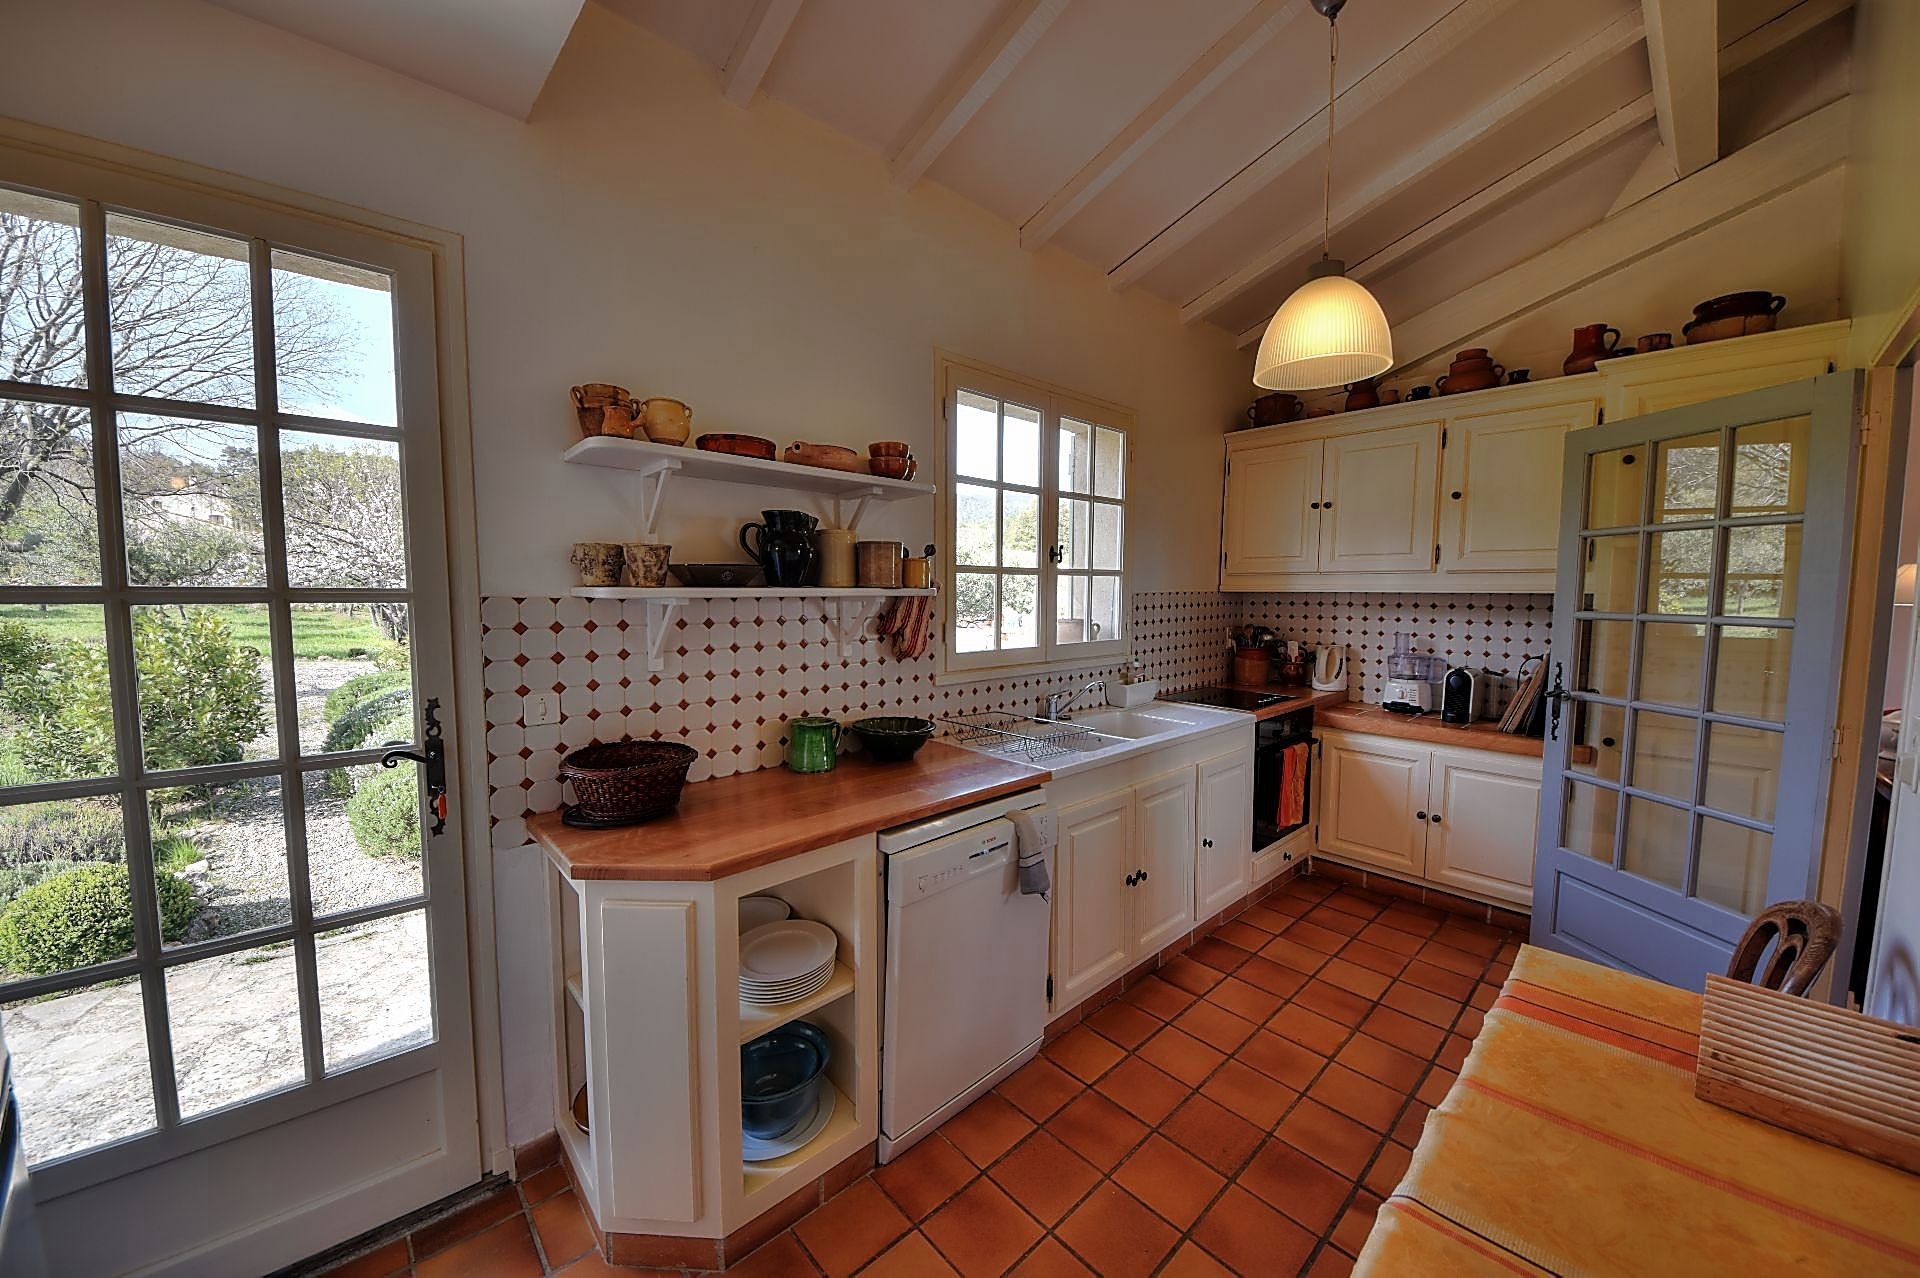 Superb 4 bedroom villa 120 m² walk to the village Aups Provence